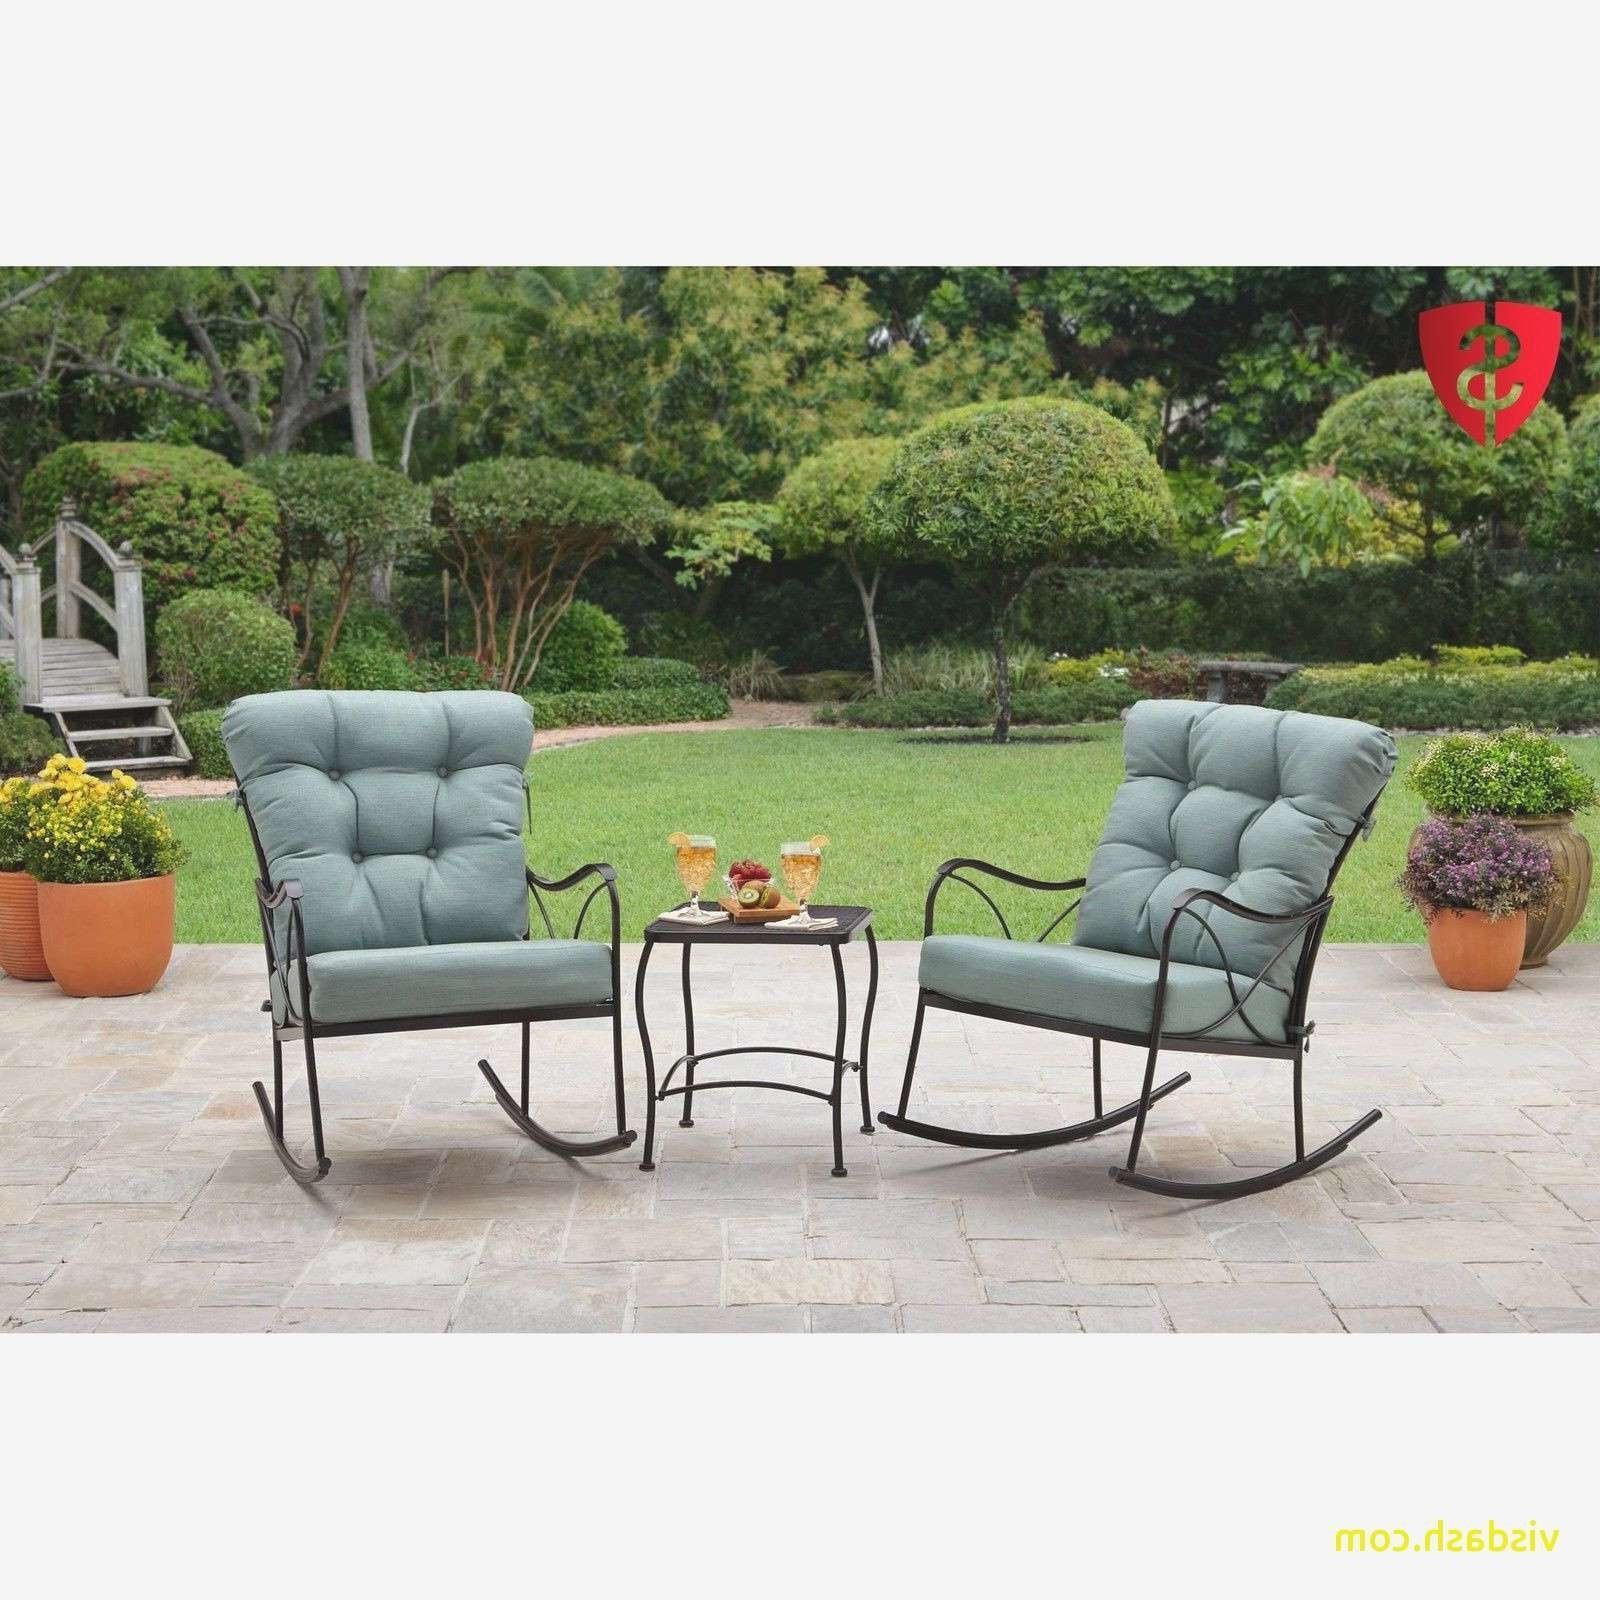 Most Popular Nfm Patio Conversation Sets Within 30 Fresh Patio Conversation Sets On Sale Design – Jsmorganicsfarm (View 8 of 20)